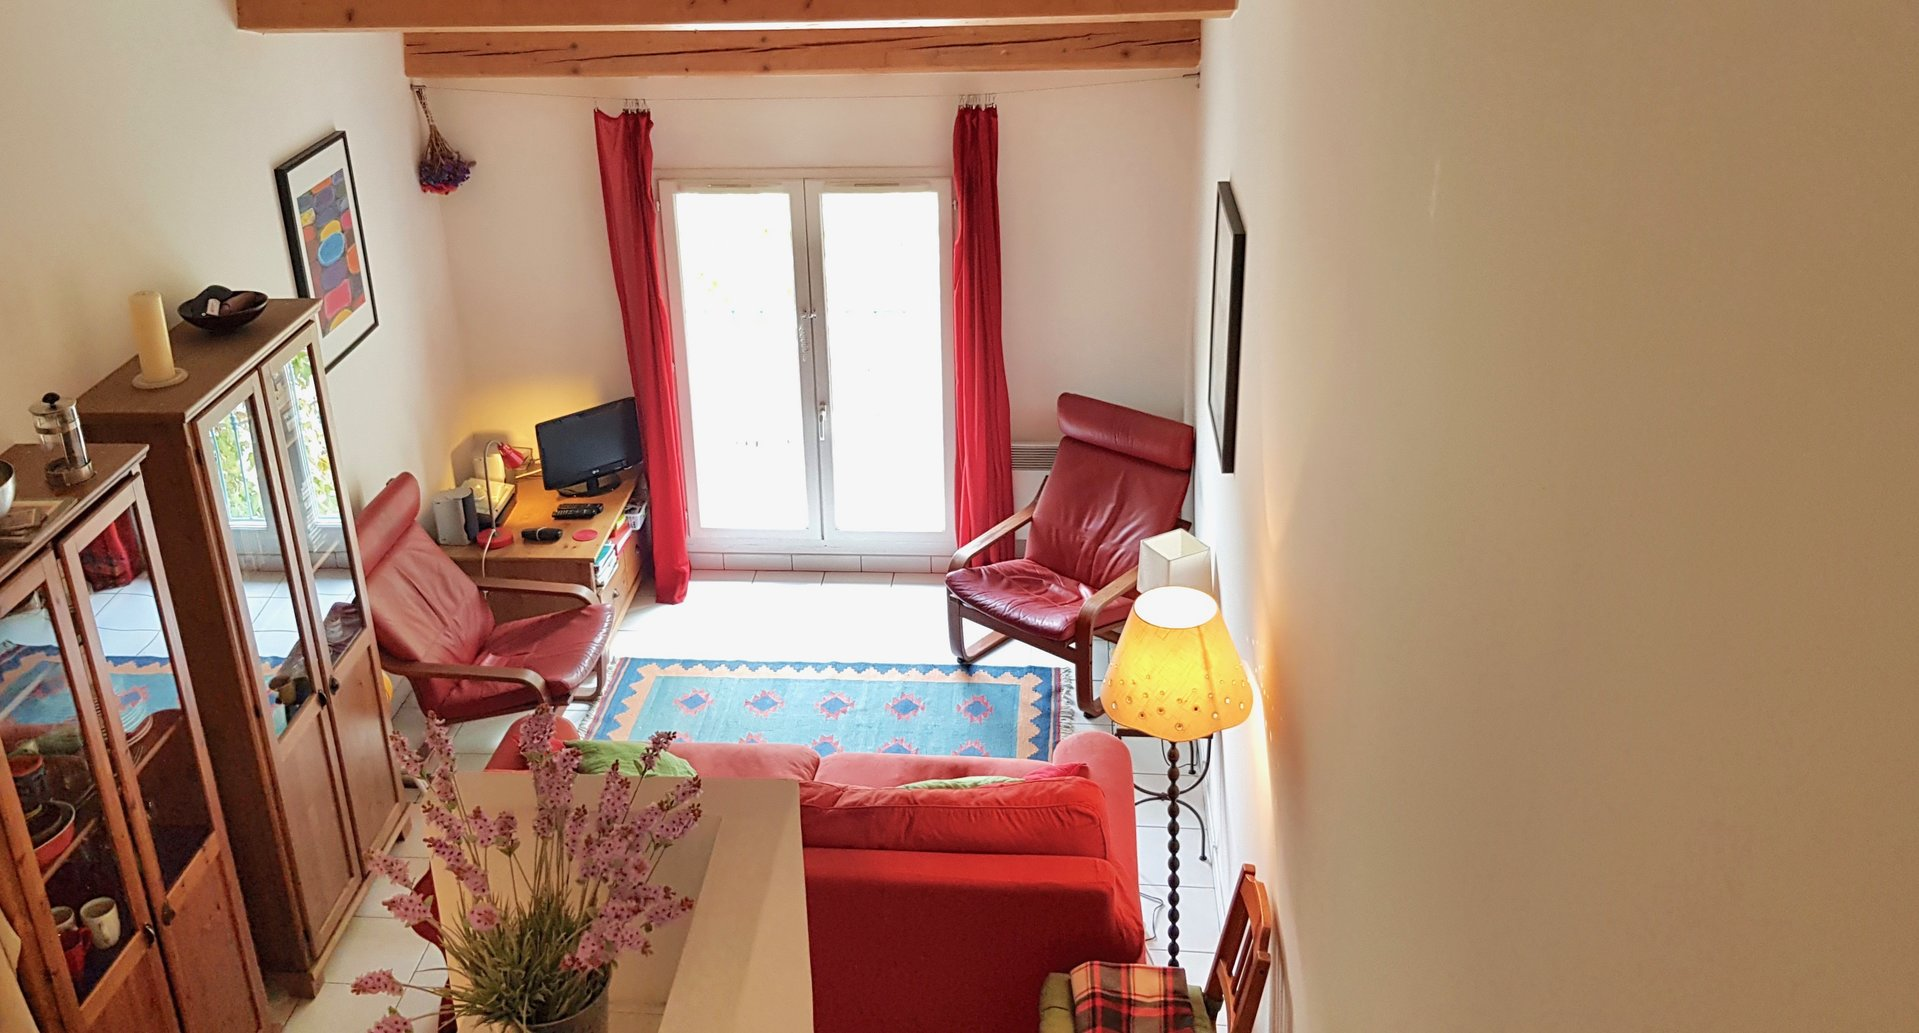 Apartment Duplex 35m2 for sale in lovely Lorgues.